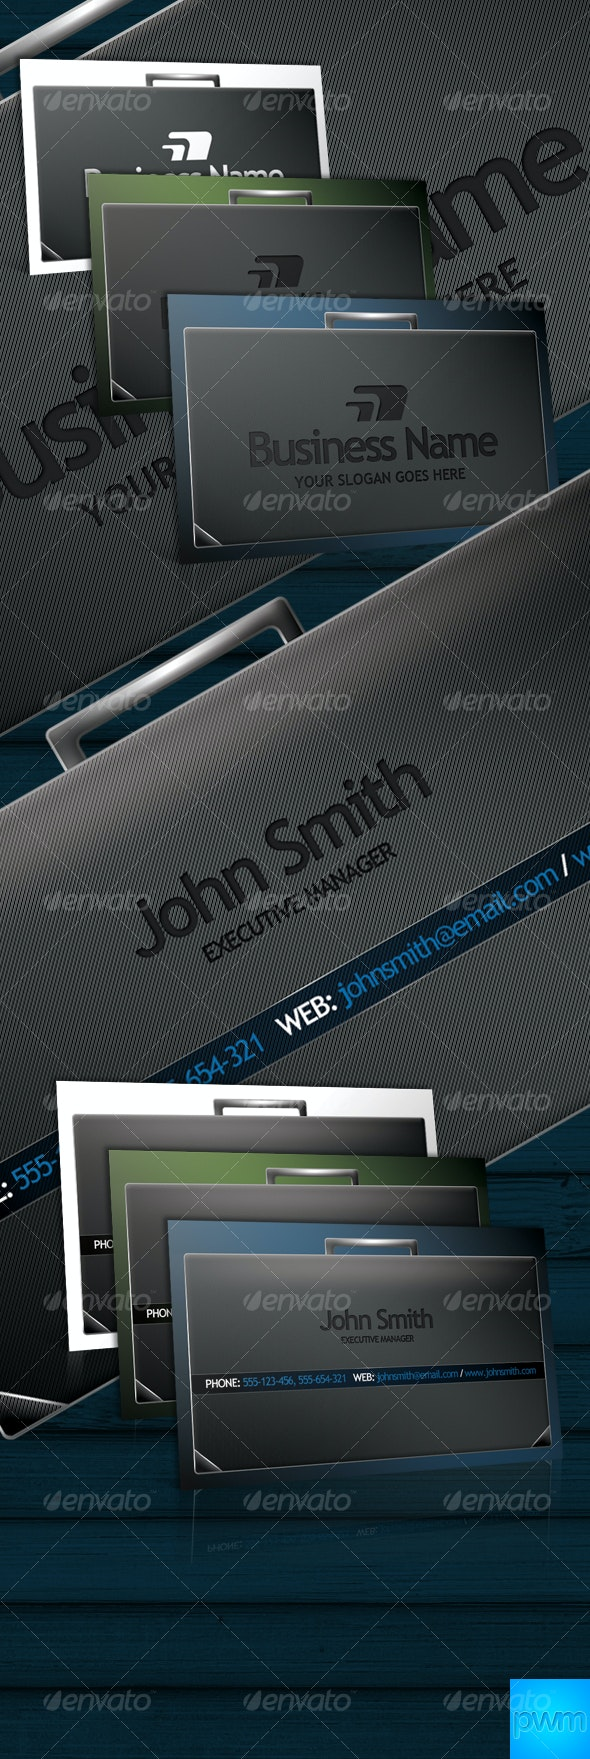 3 Elegant Briefcase Business Cards - Corporate Business Cards